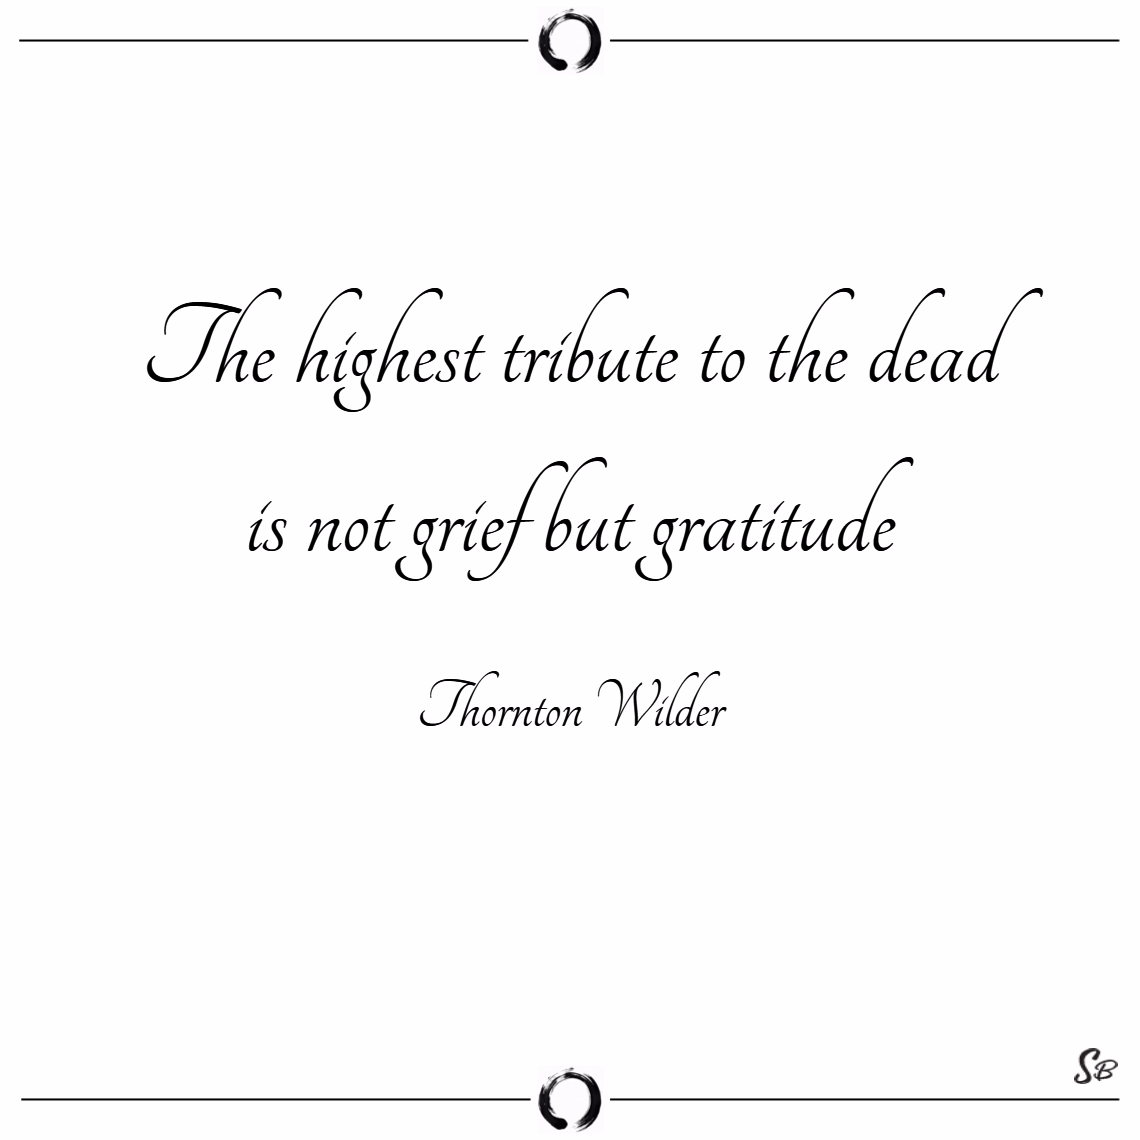 The highest tribute to the dead is not grief but gratitude. – thornton wilder